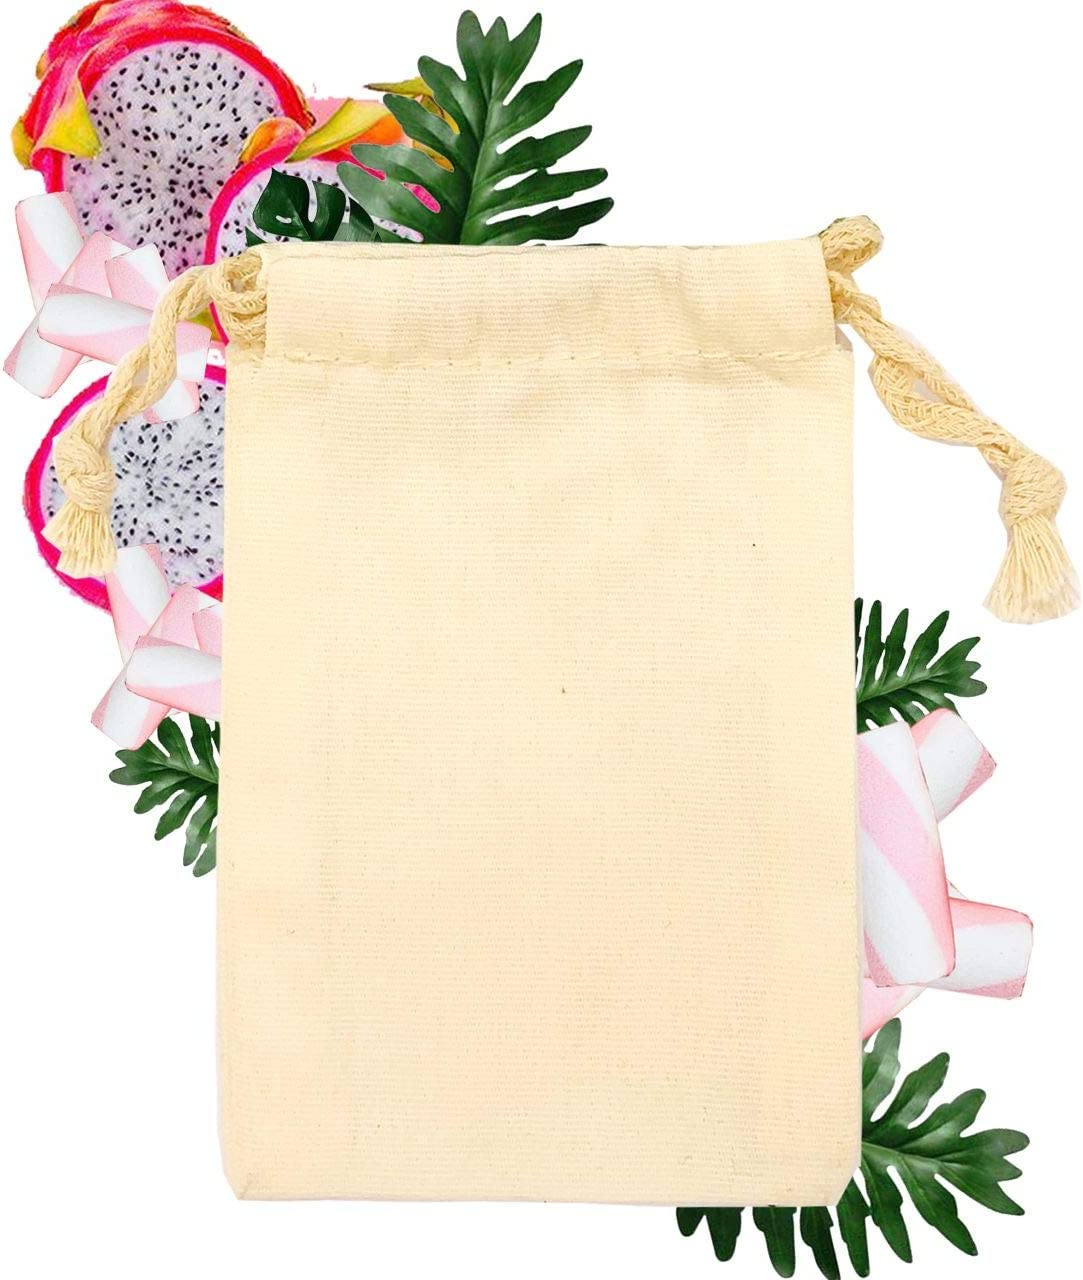 Pack of 50 8x10 inches 100% 5☆好評 Produc bags Canvas 2020秋冬新作 Reusable Cotton -